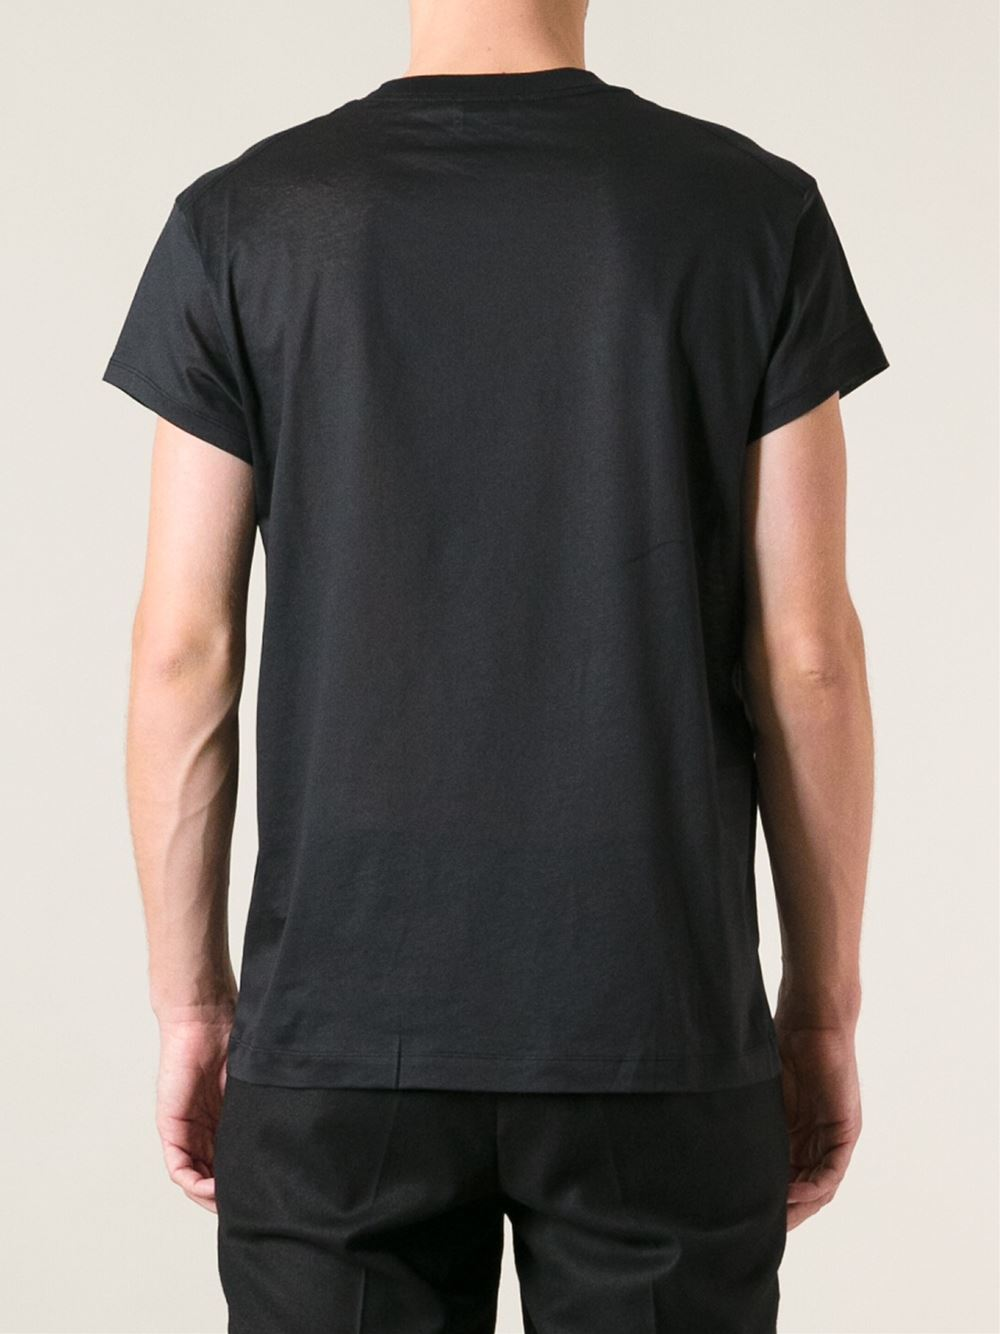 You First ACNE Studio cool shirt 3